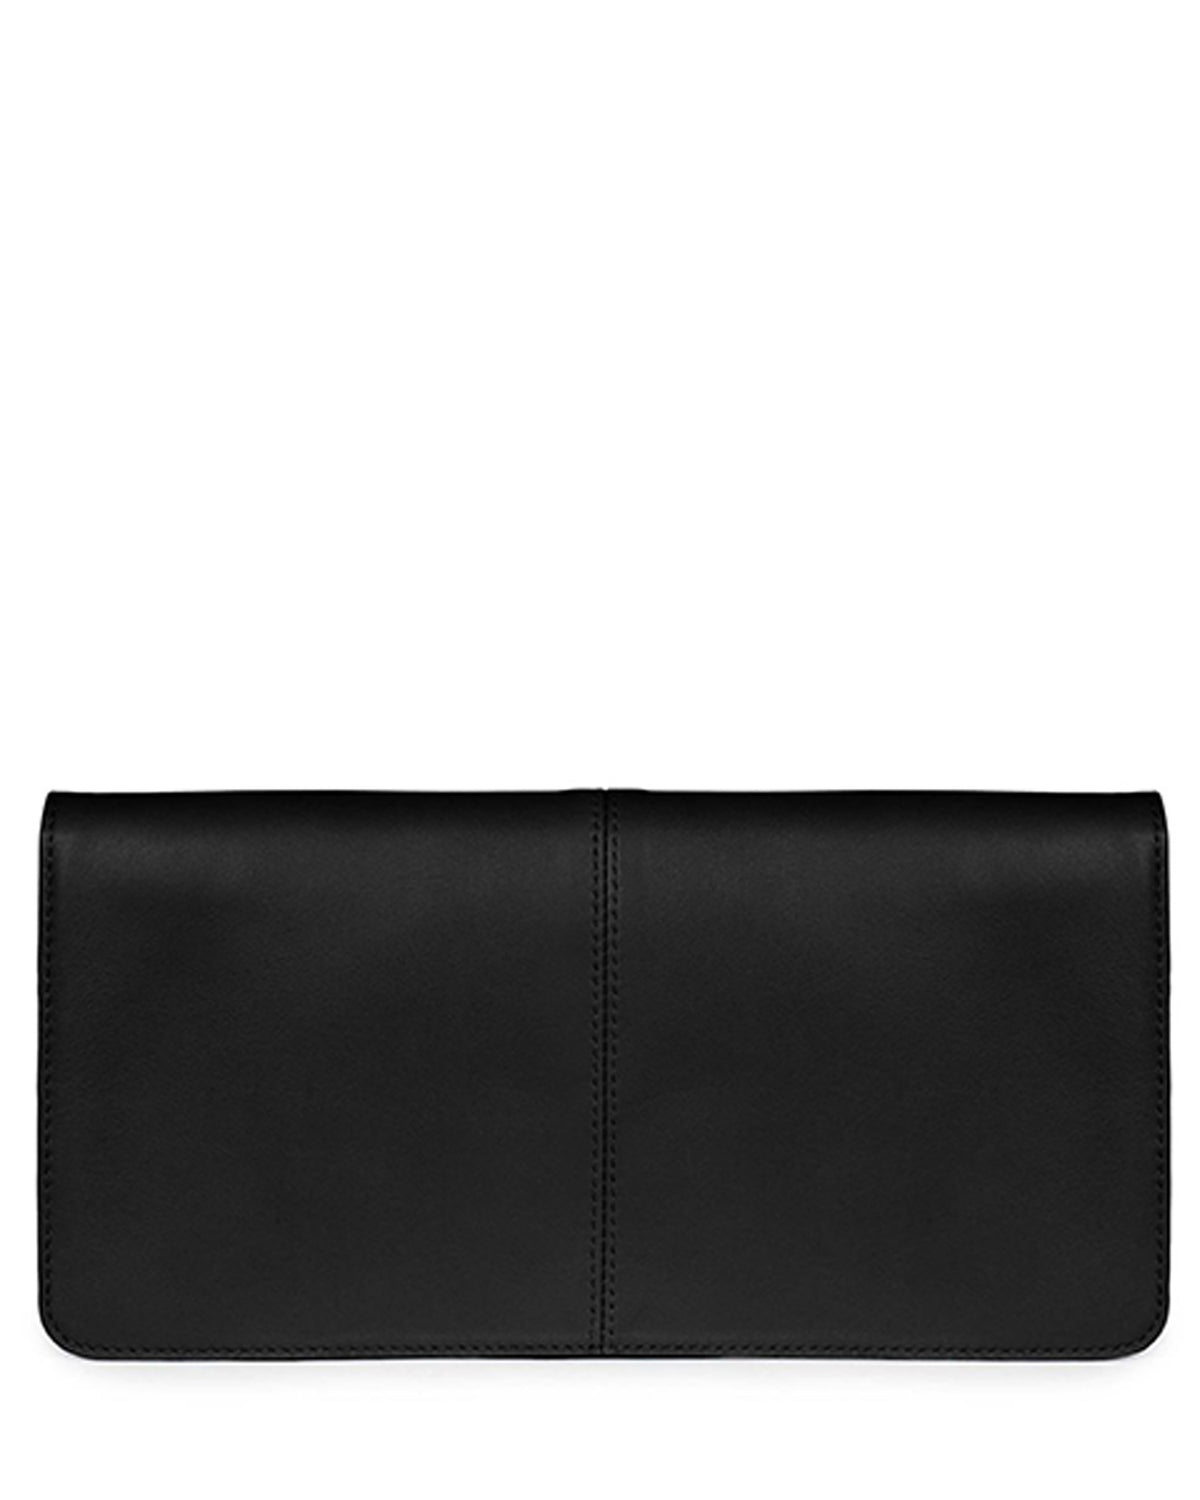 VIDA CLUTCH in Black Napa